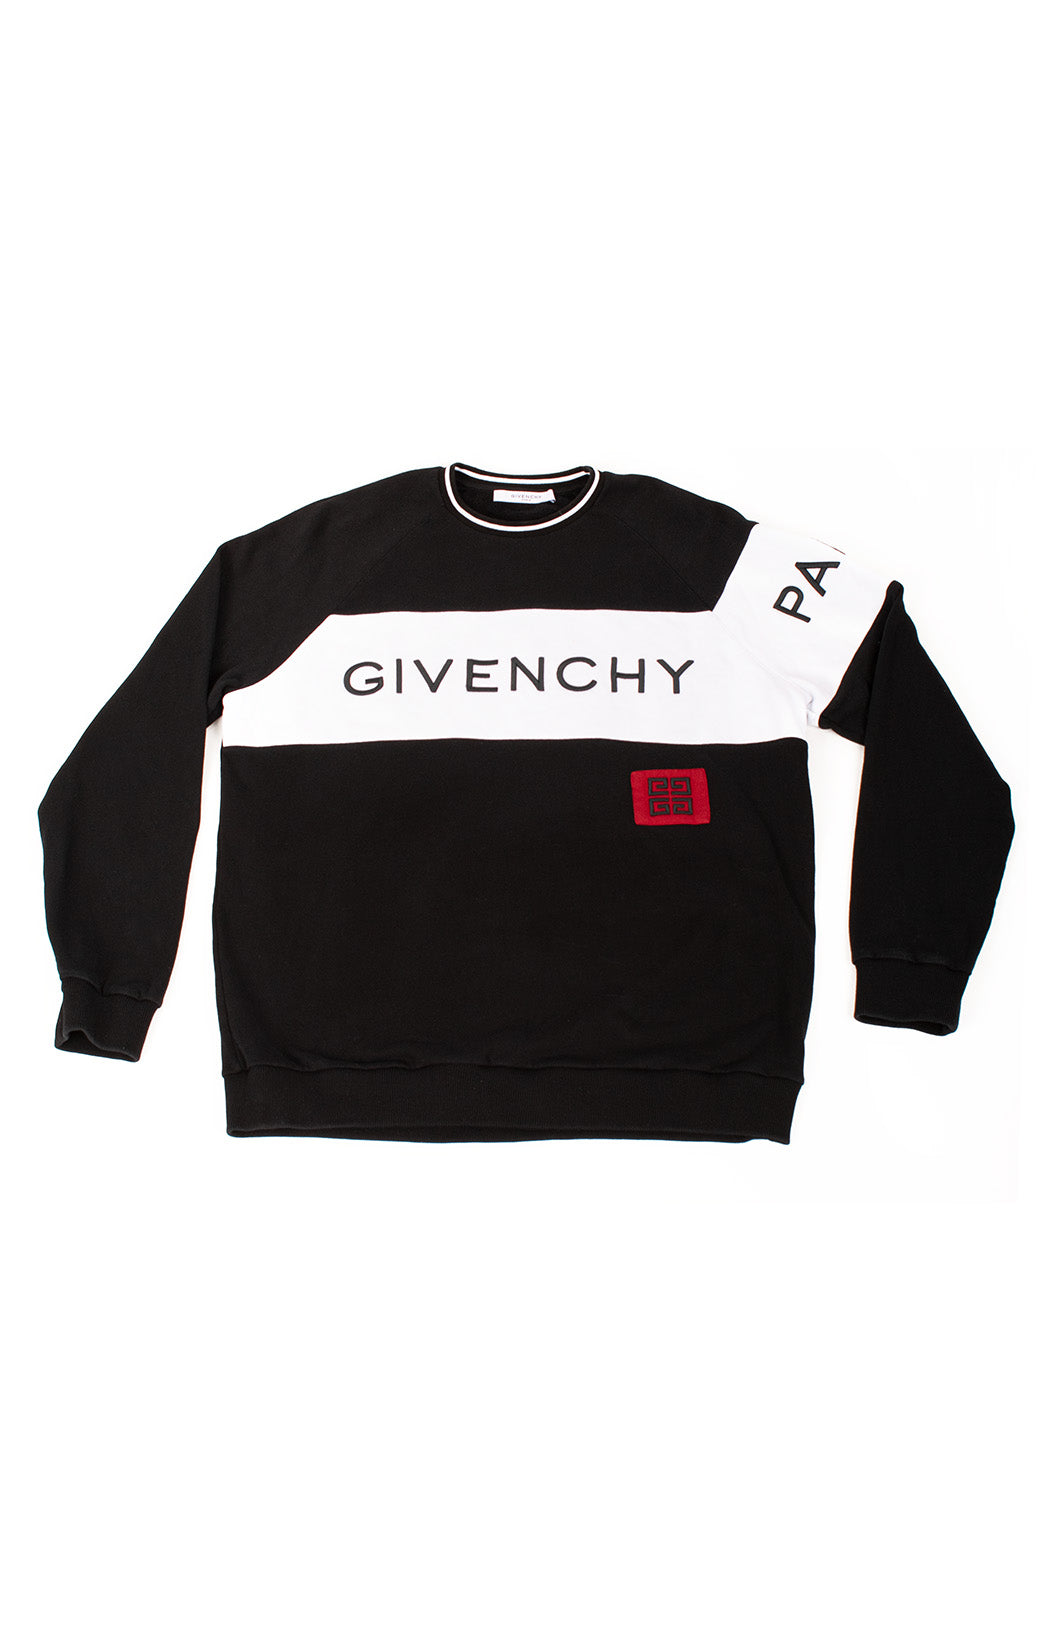 Front view of GIVENCHY Sweatshirt Size: XXL